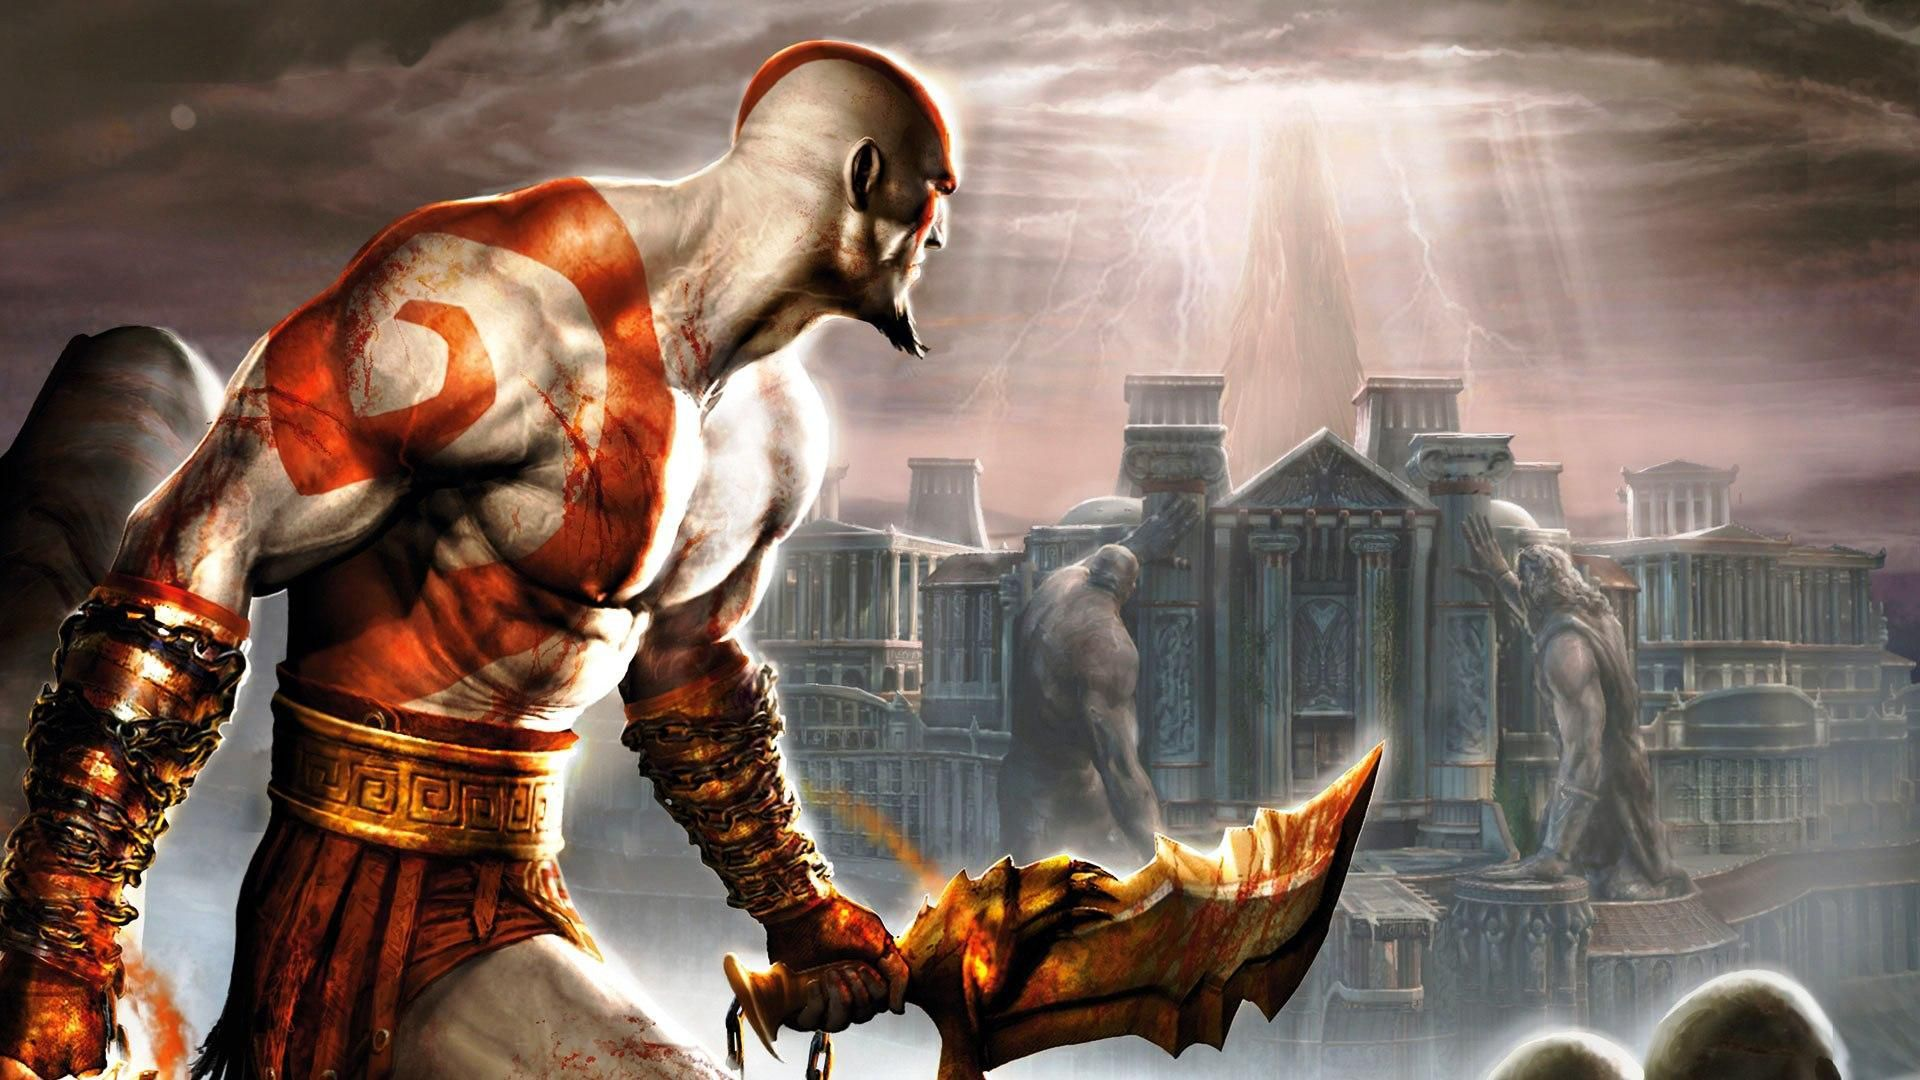 kratos voice actor will not return in god of war 4 — geektyrant